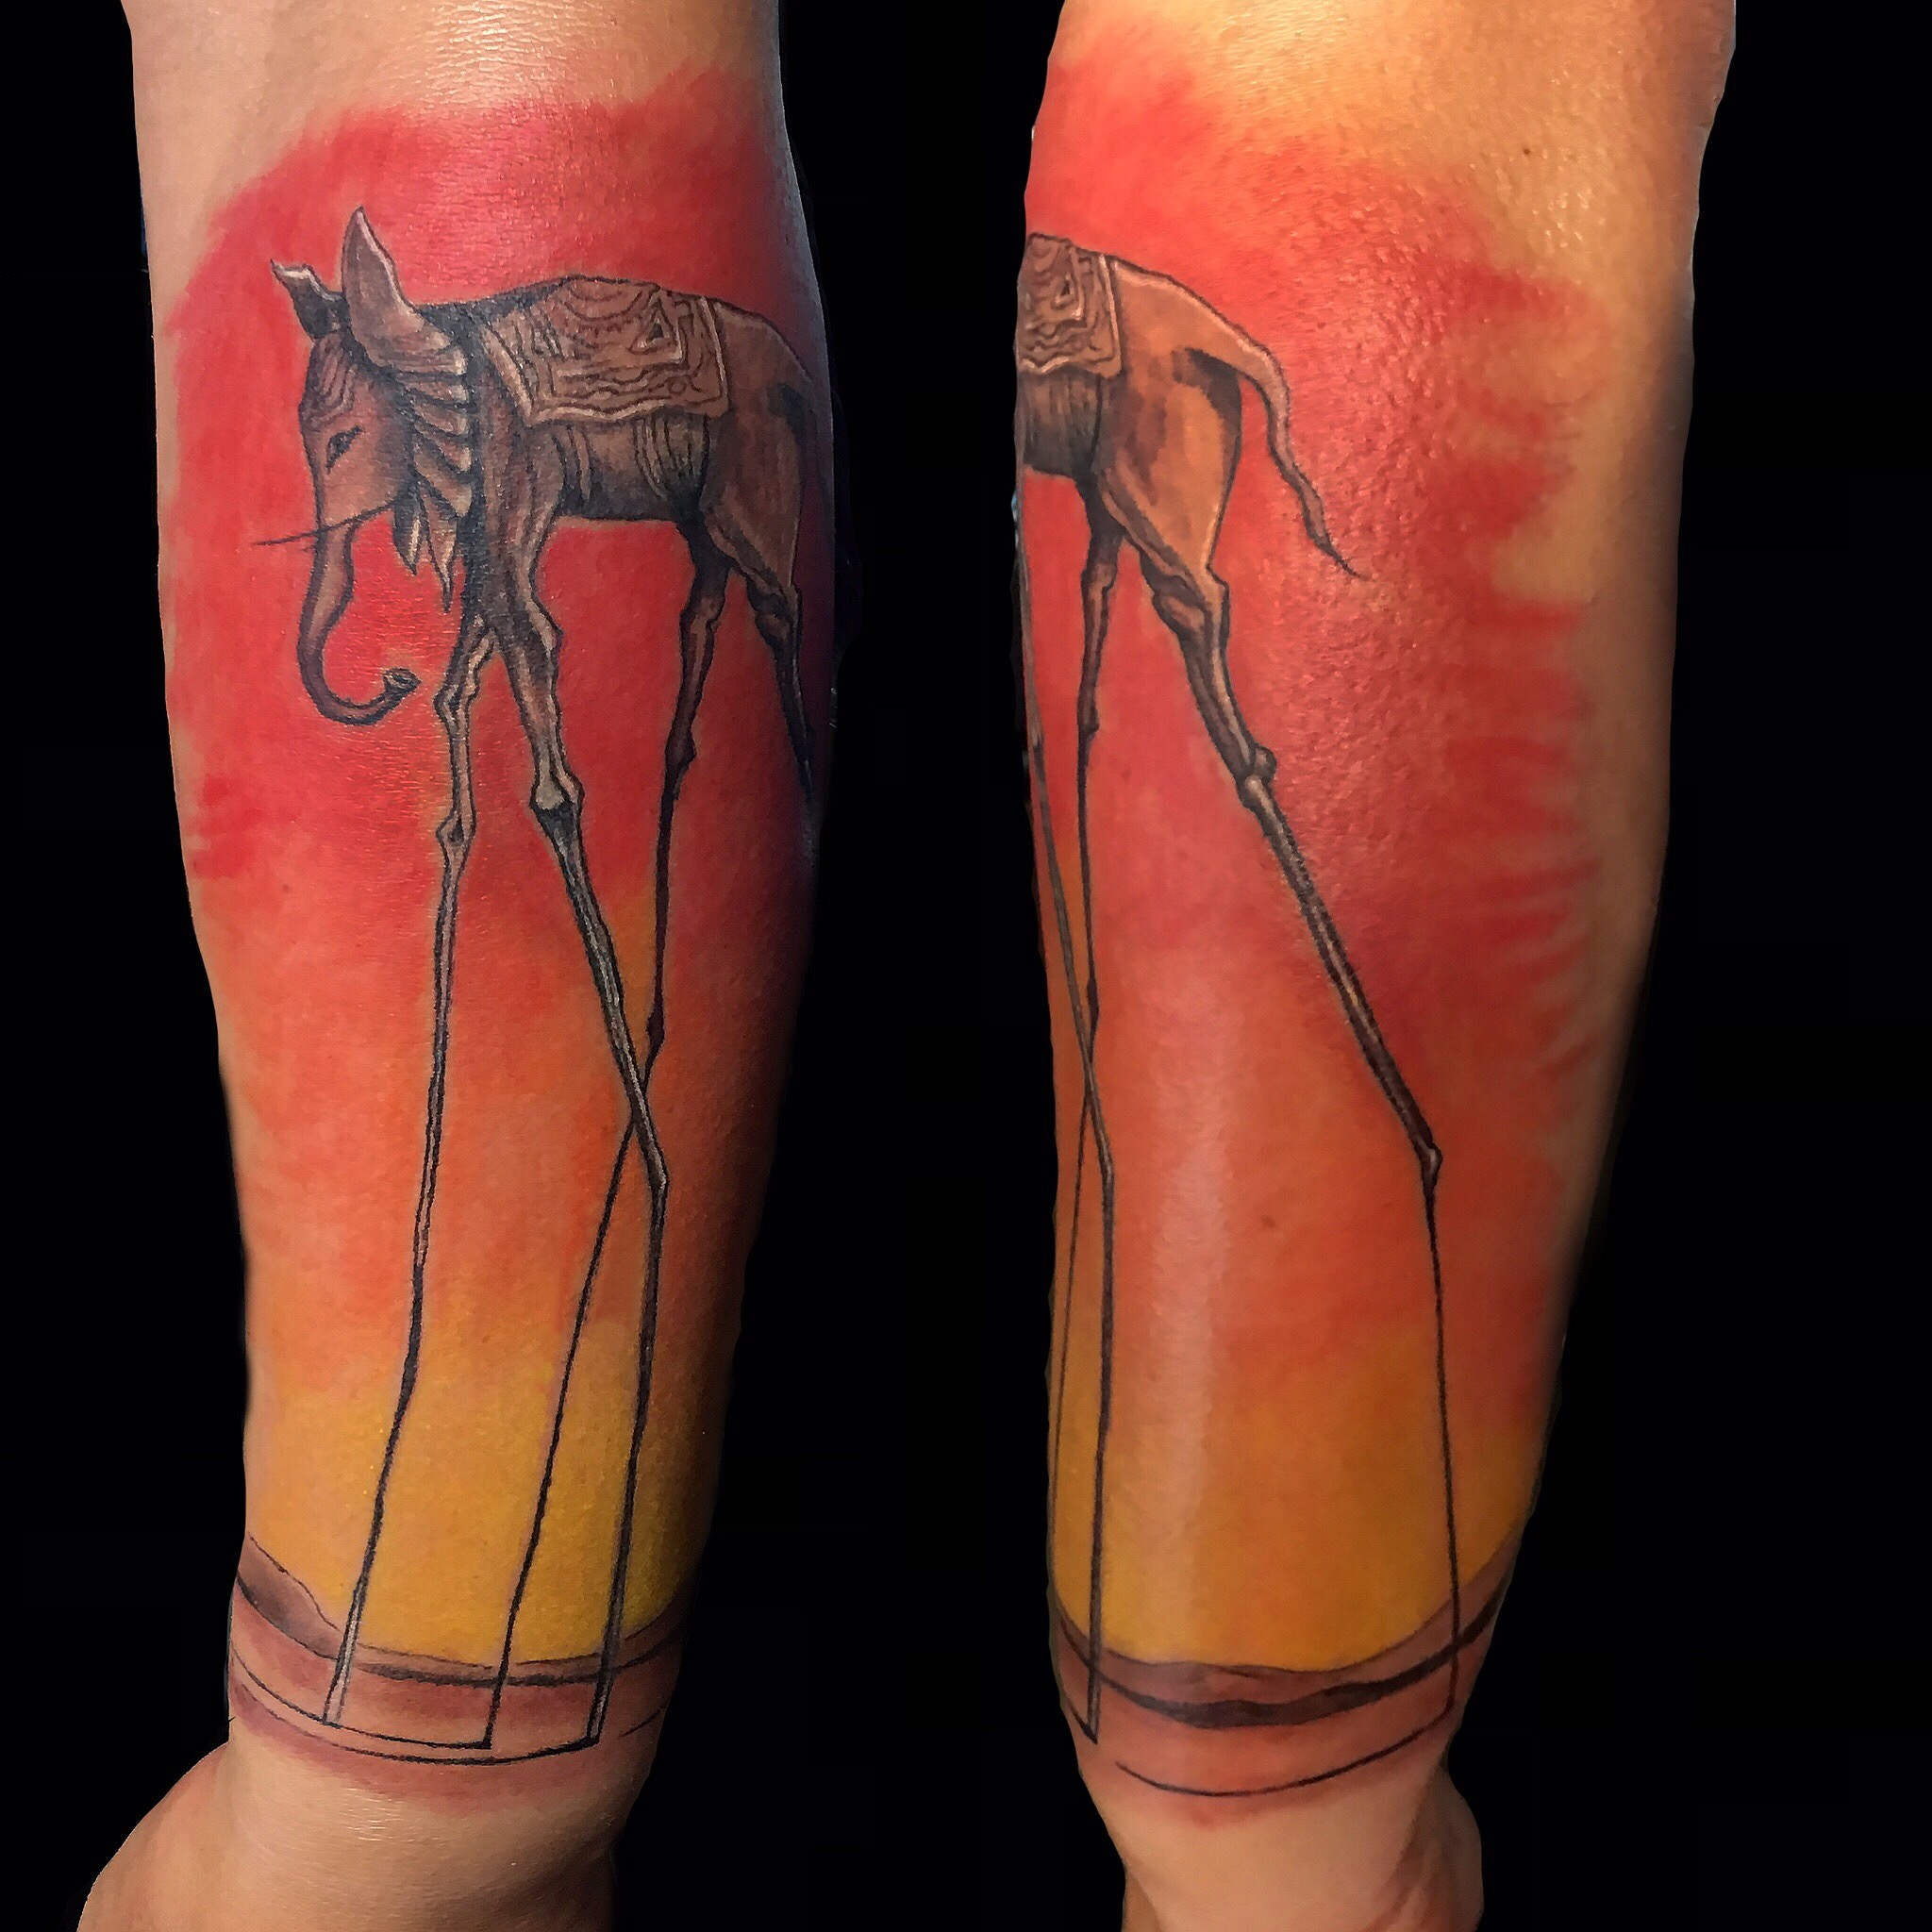 Salvador Dali's Elephant tattoo by Robin Patel